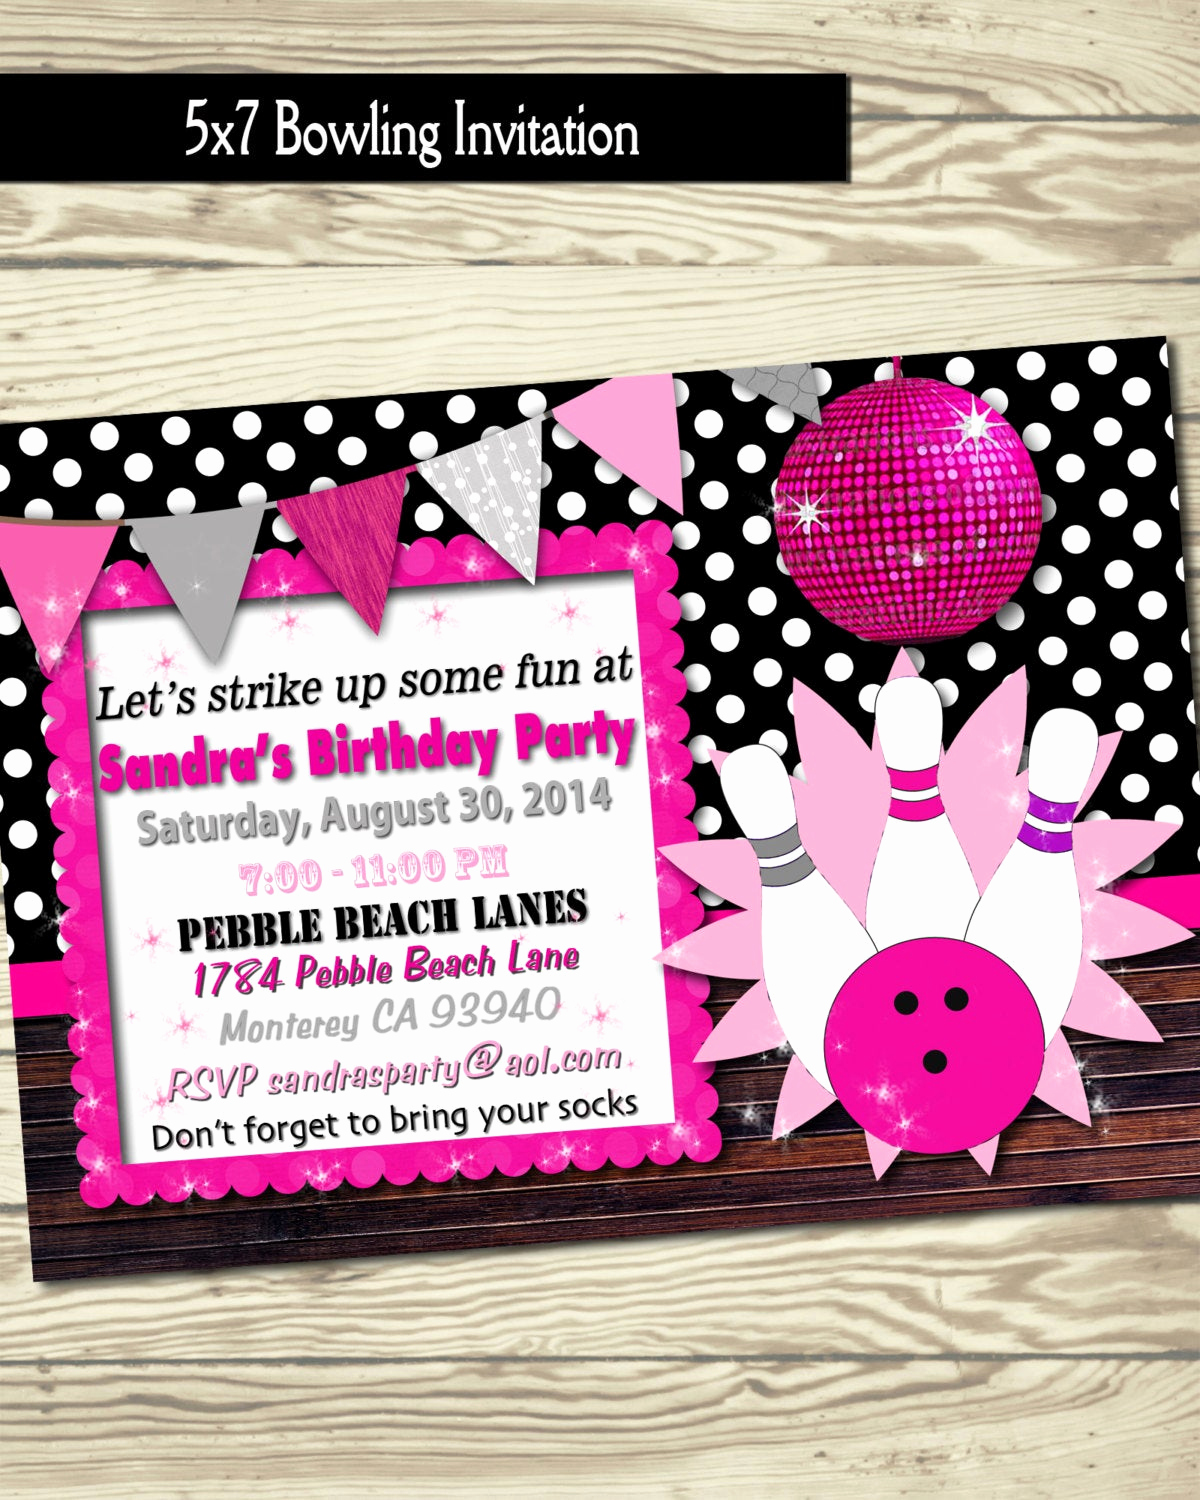 Bowling Birthday Party Invitation Luxury Bowling Invitation Birthday Party Bowling Party Girl